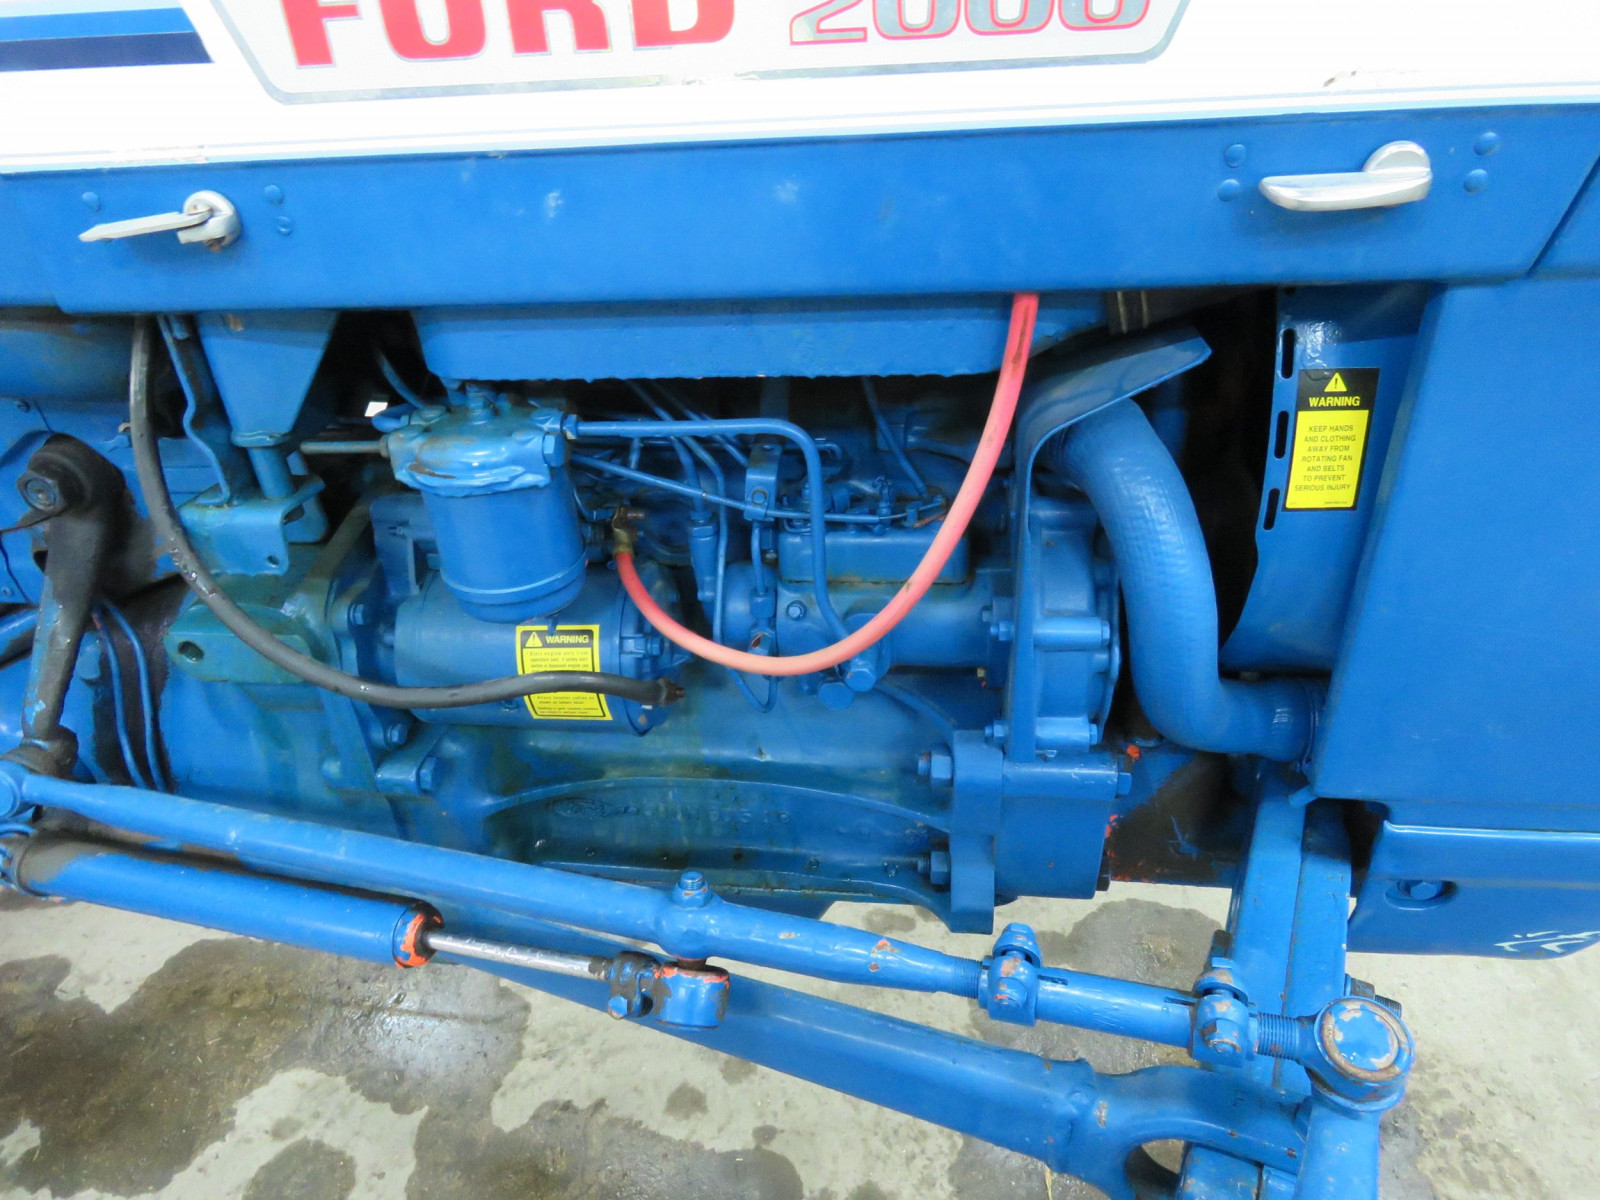 1972 Ford 2000 Tractor - Image 2